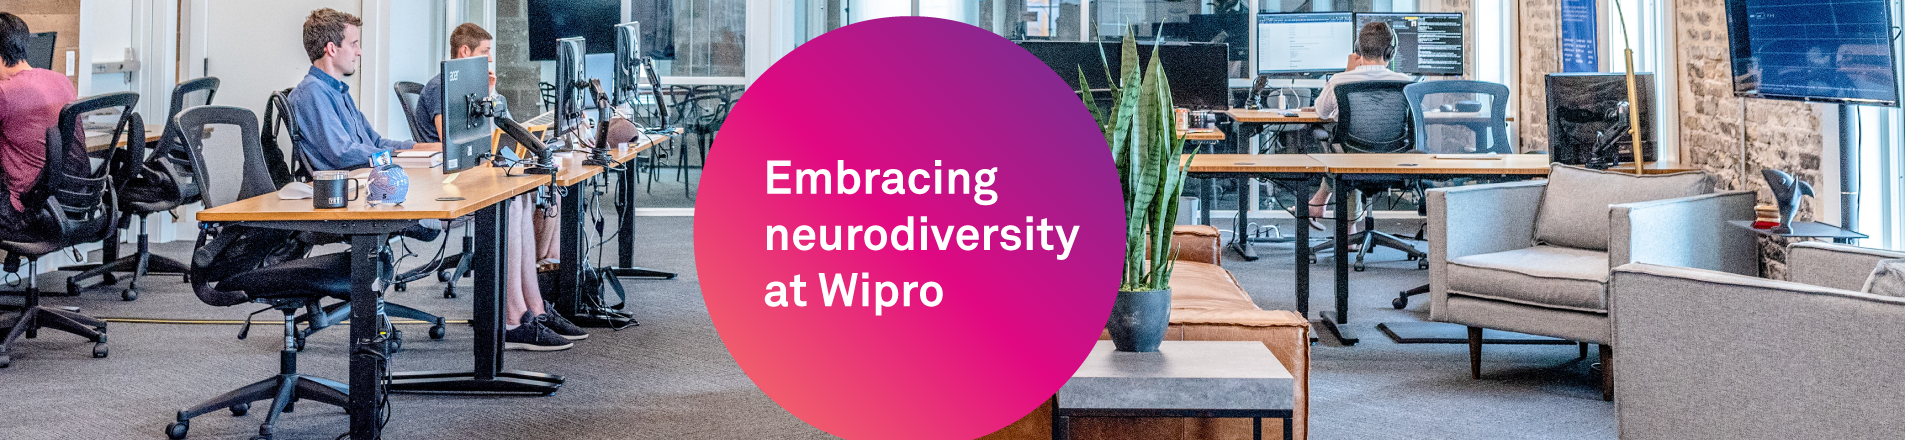 Embracing neurodiversity at Wipro  - Image of 4 males working at terminals within an office setting.